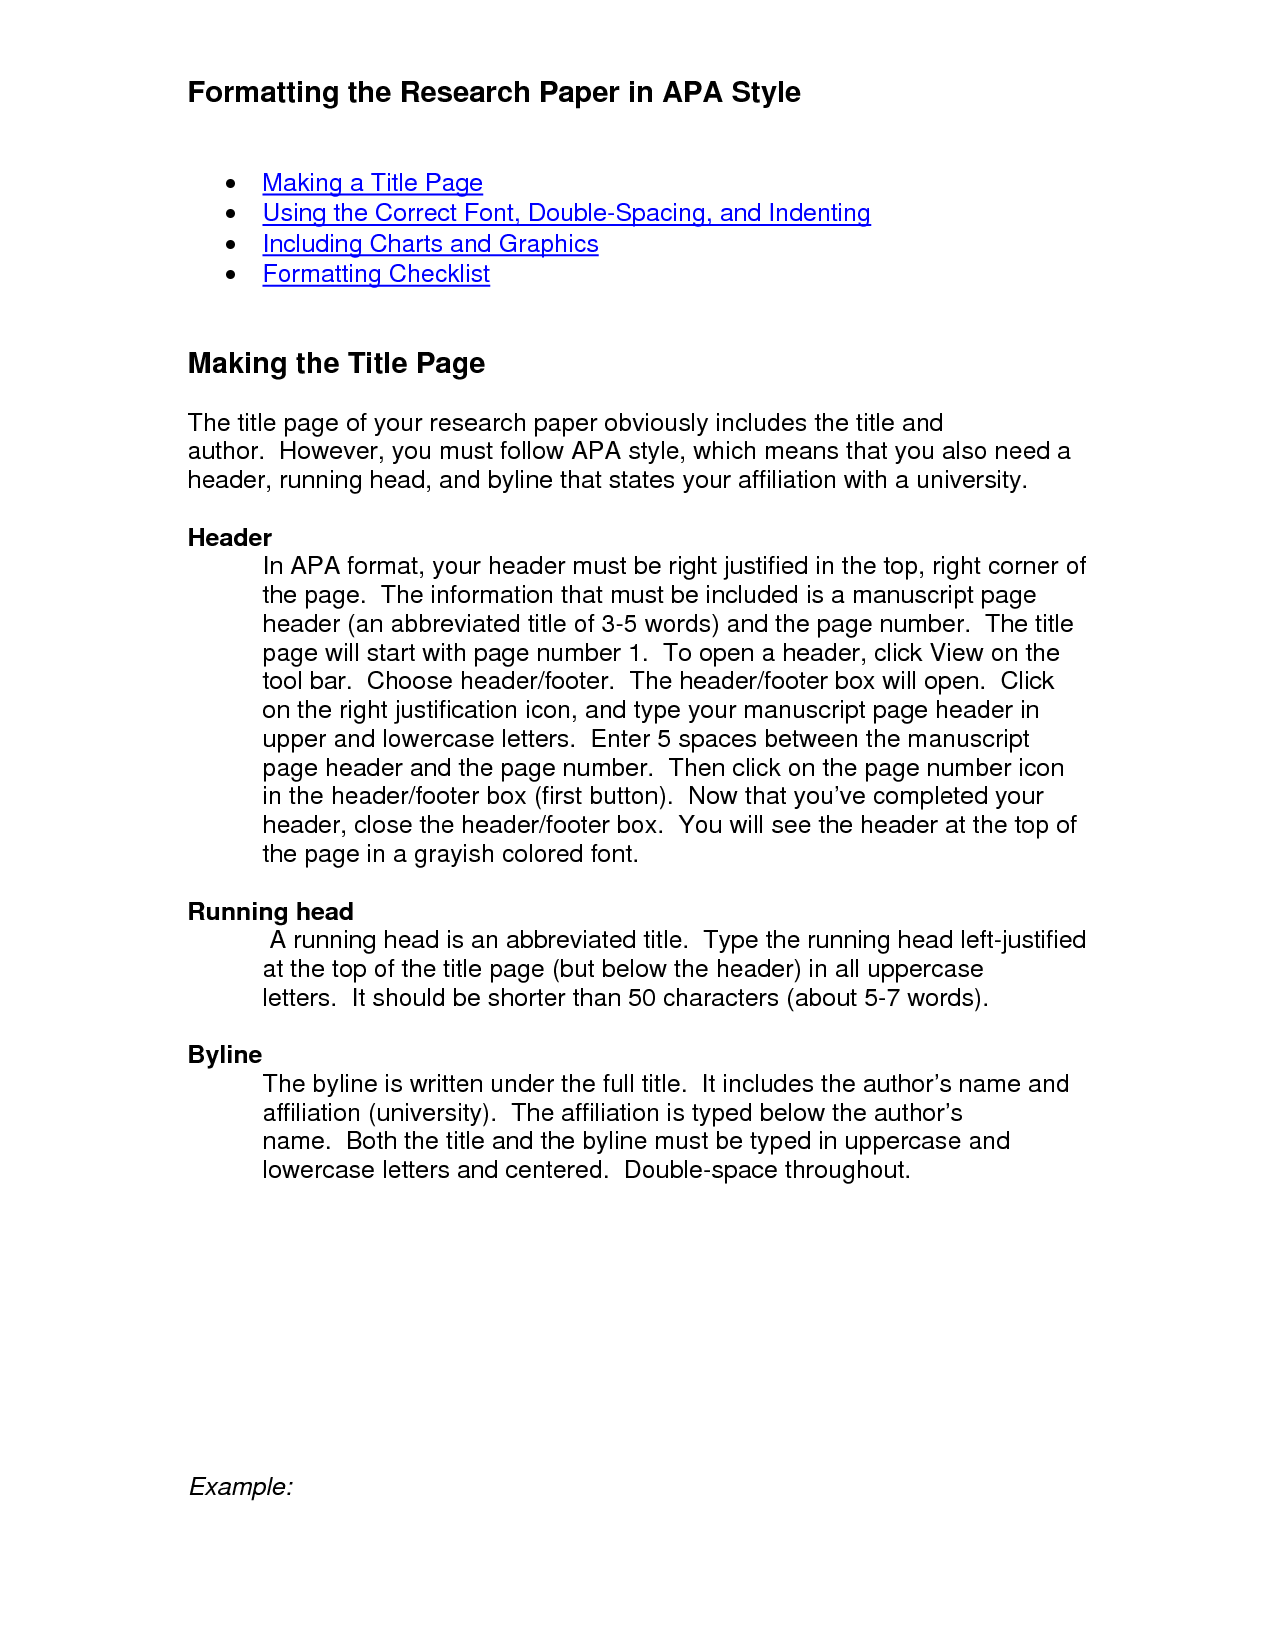 005 Research Paper 2mefq6rl5g How To Cite In Apa Fearsome A Style Write Bibliography For Format Full